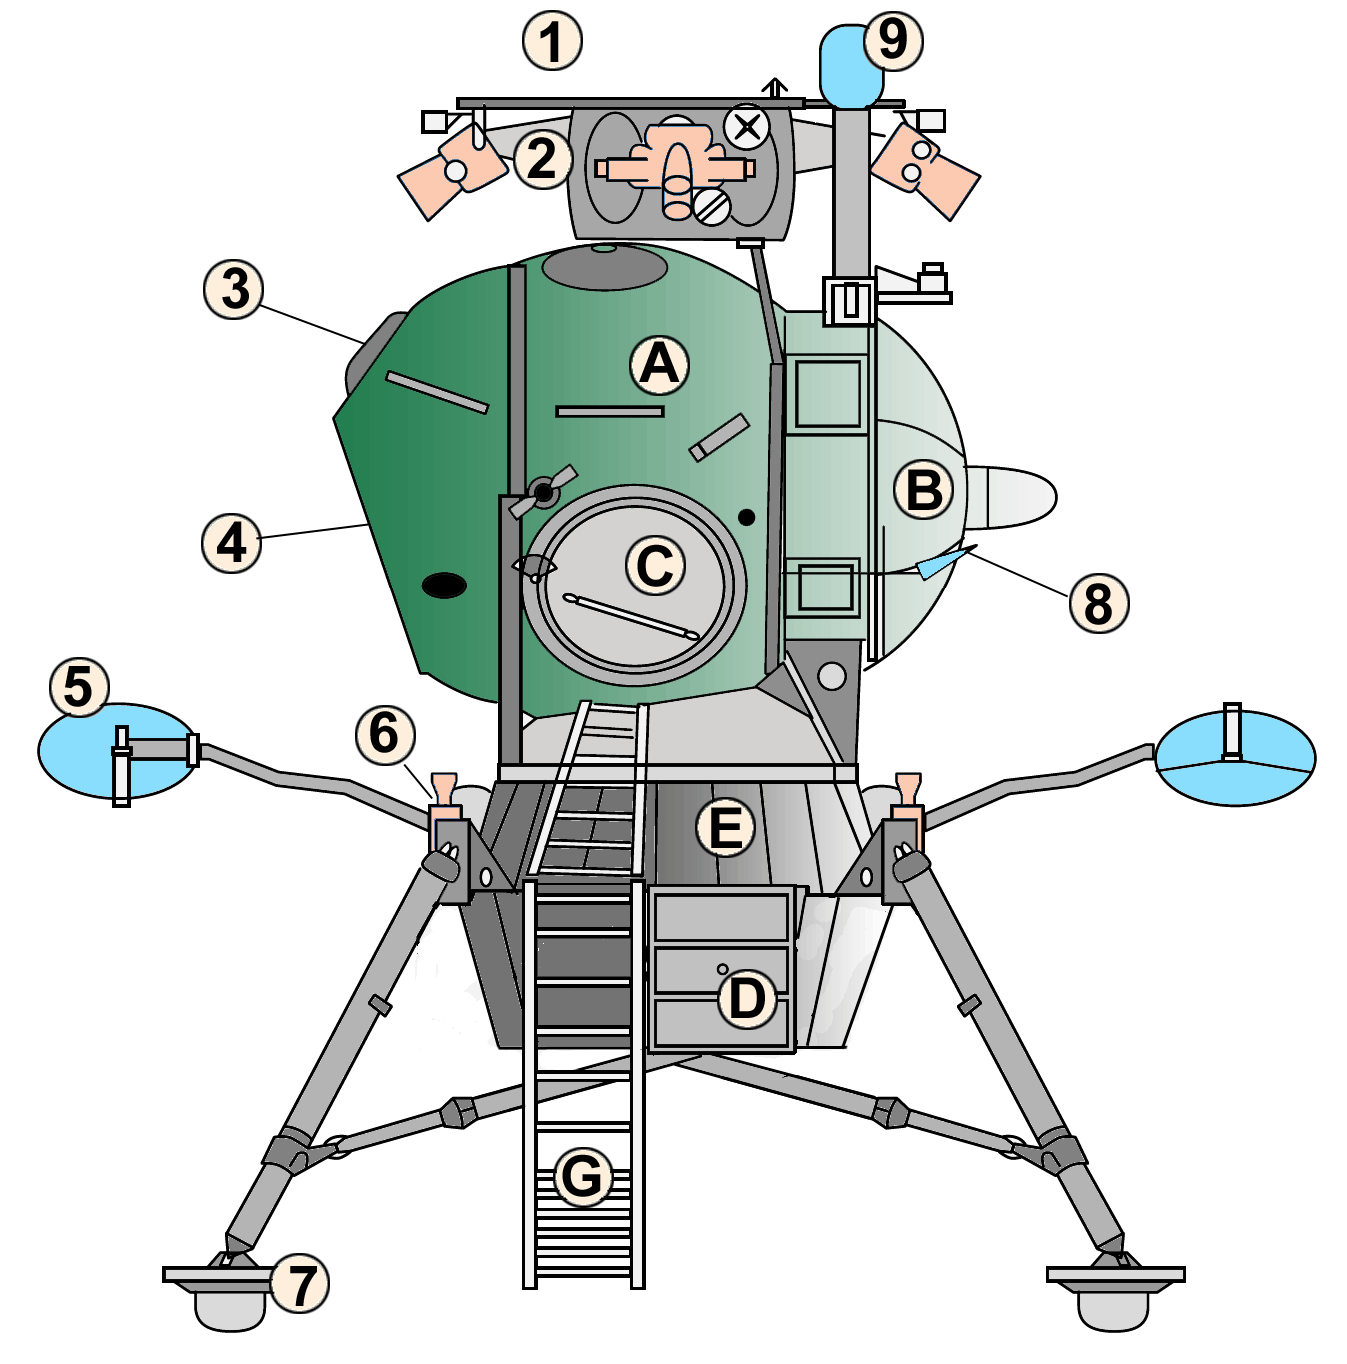 Soviet_lk_spacecraft_drawing_with_labels